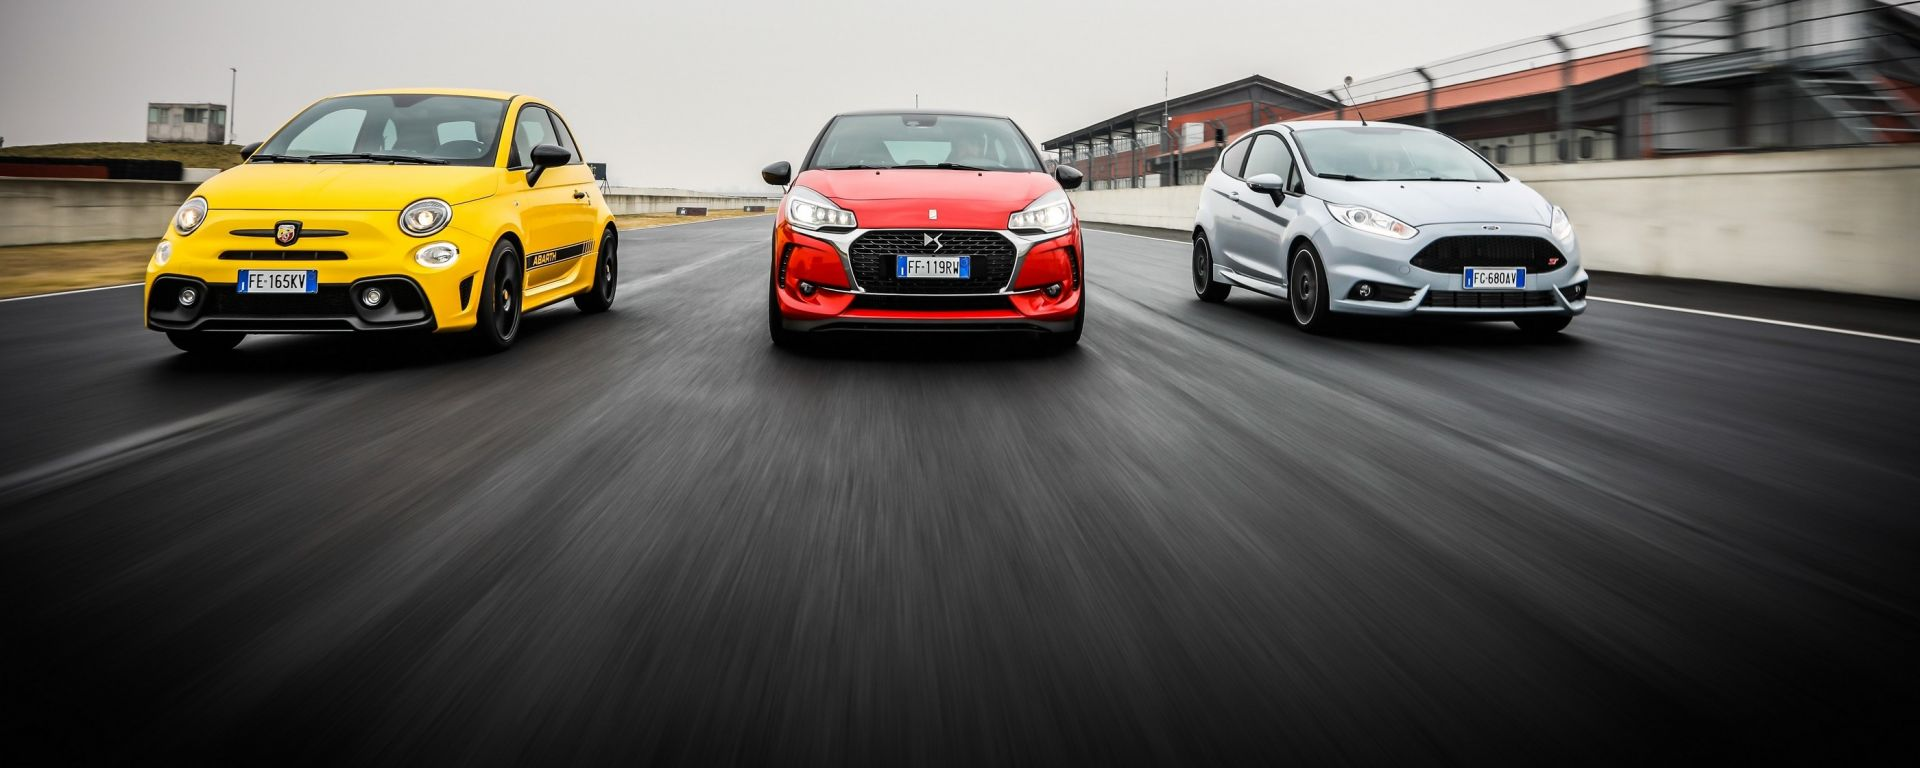 DS3 Performance vs Abarth 595 competizione vs Ford Fiesta ST200: la sfida in pista